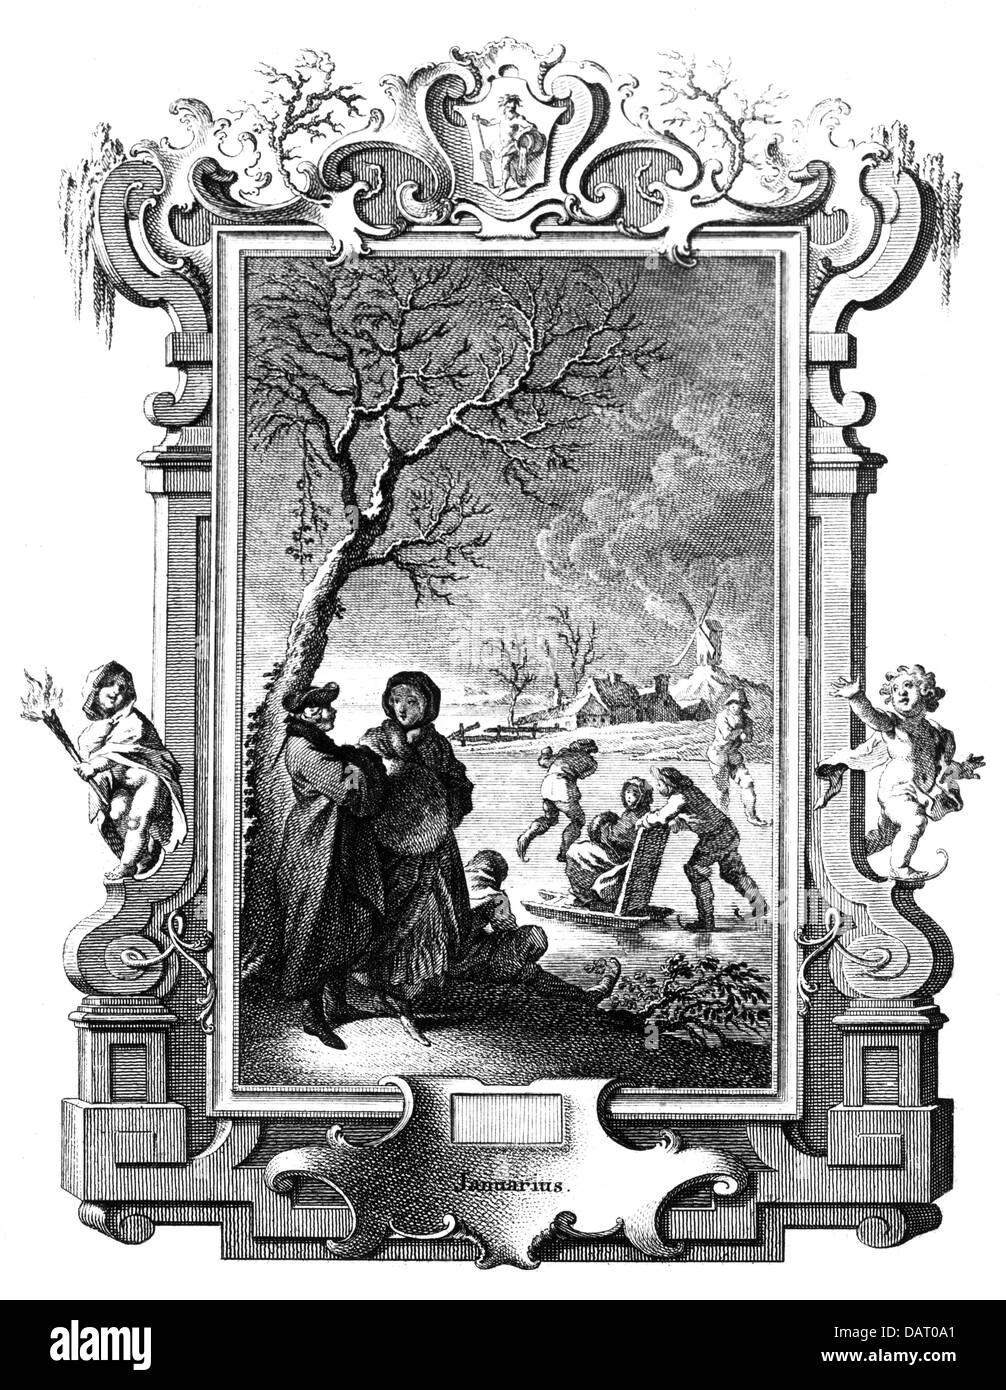 calendar, month image, January, copper engraving by Johannes Esaias Nilson, Augsburg, circa 1750, Artist's Copyright - Stock Image